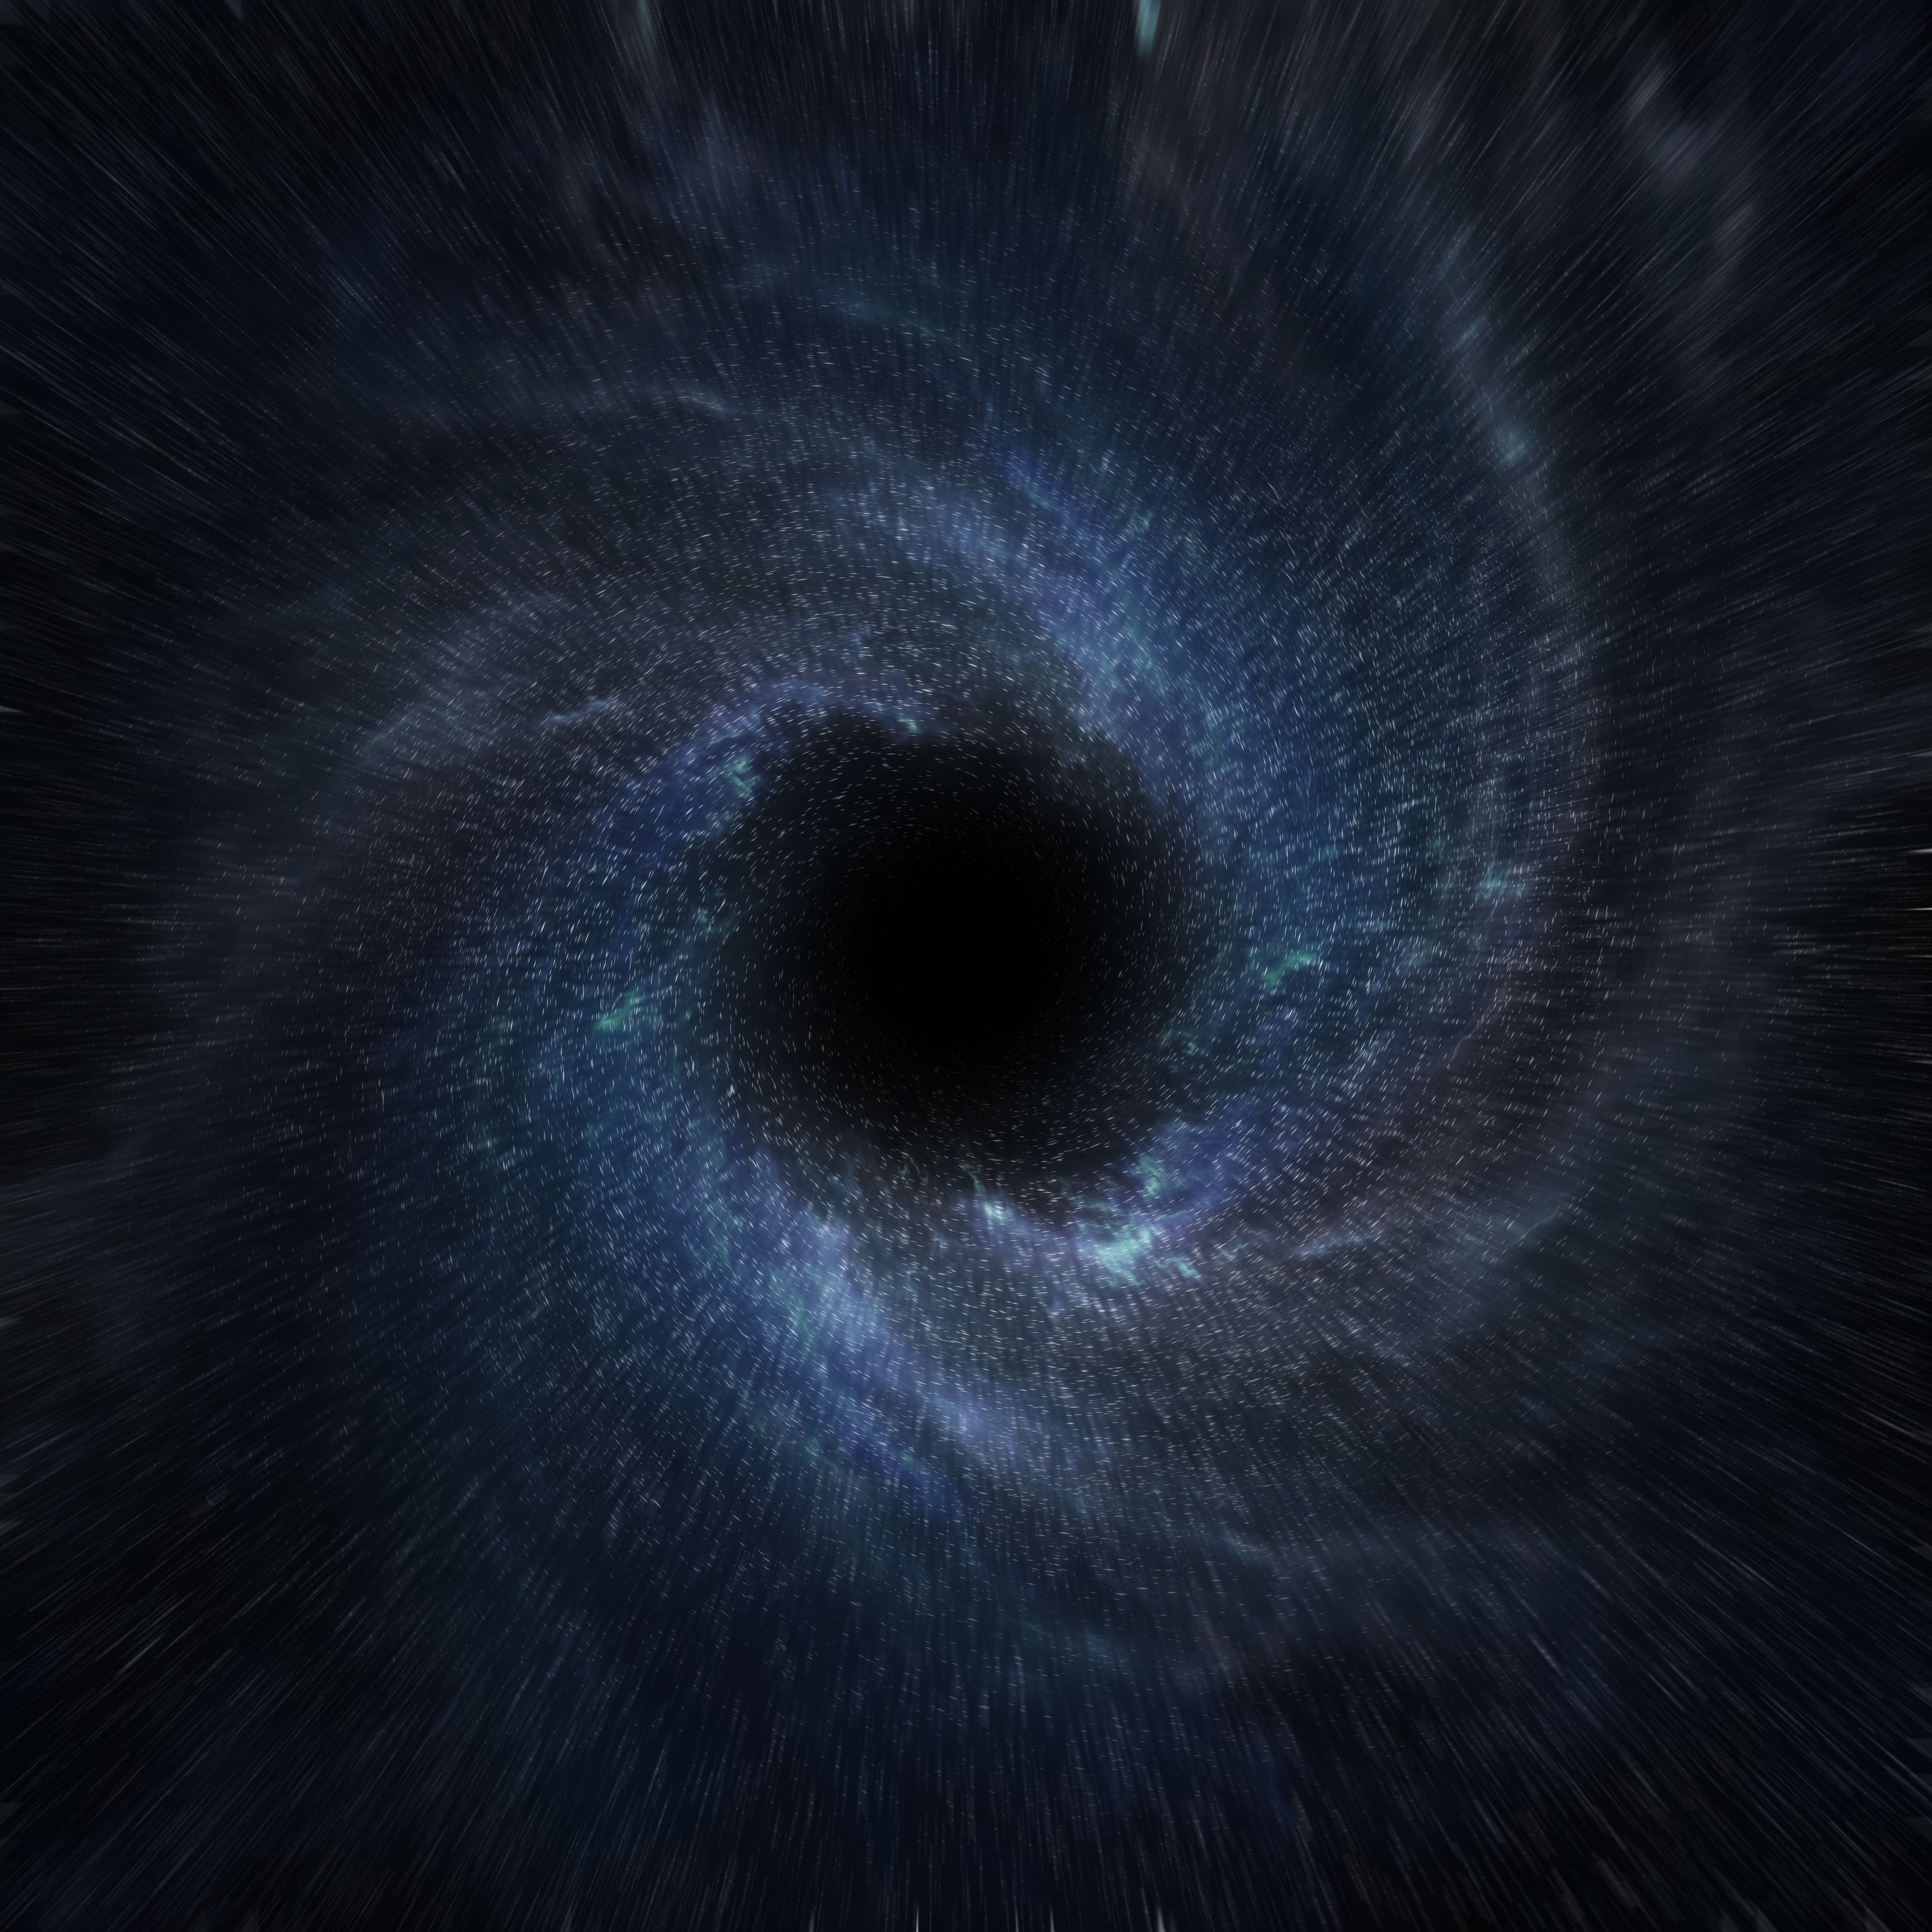 The Black Hole At The Heart Of This Galaxy May Be Among The Biggest In The Universe Black Hole Theory Black Hole Black Holes In Space